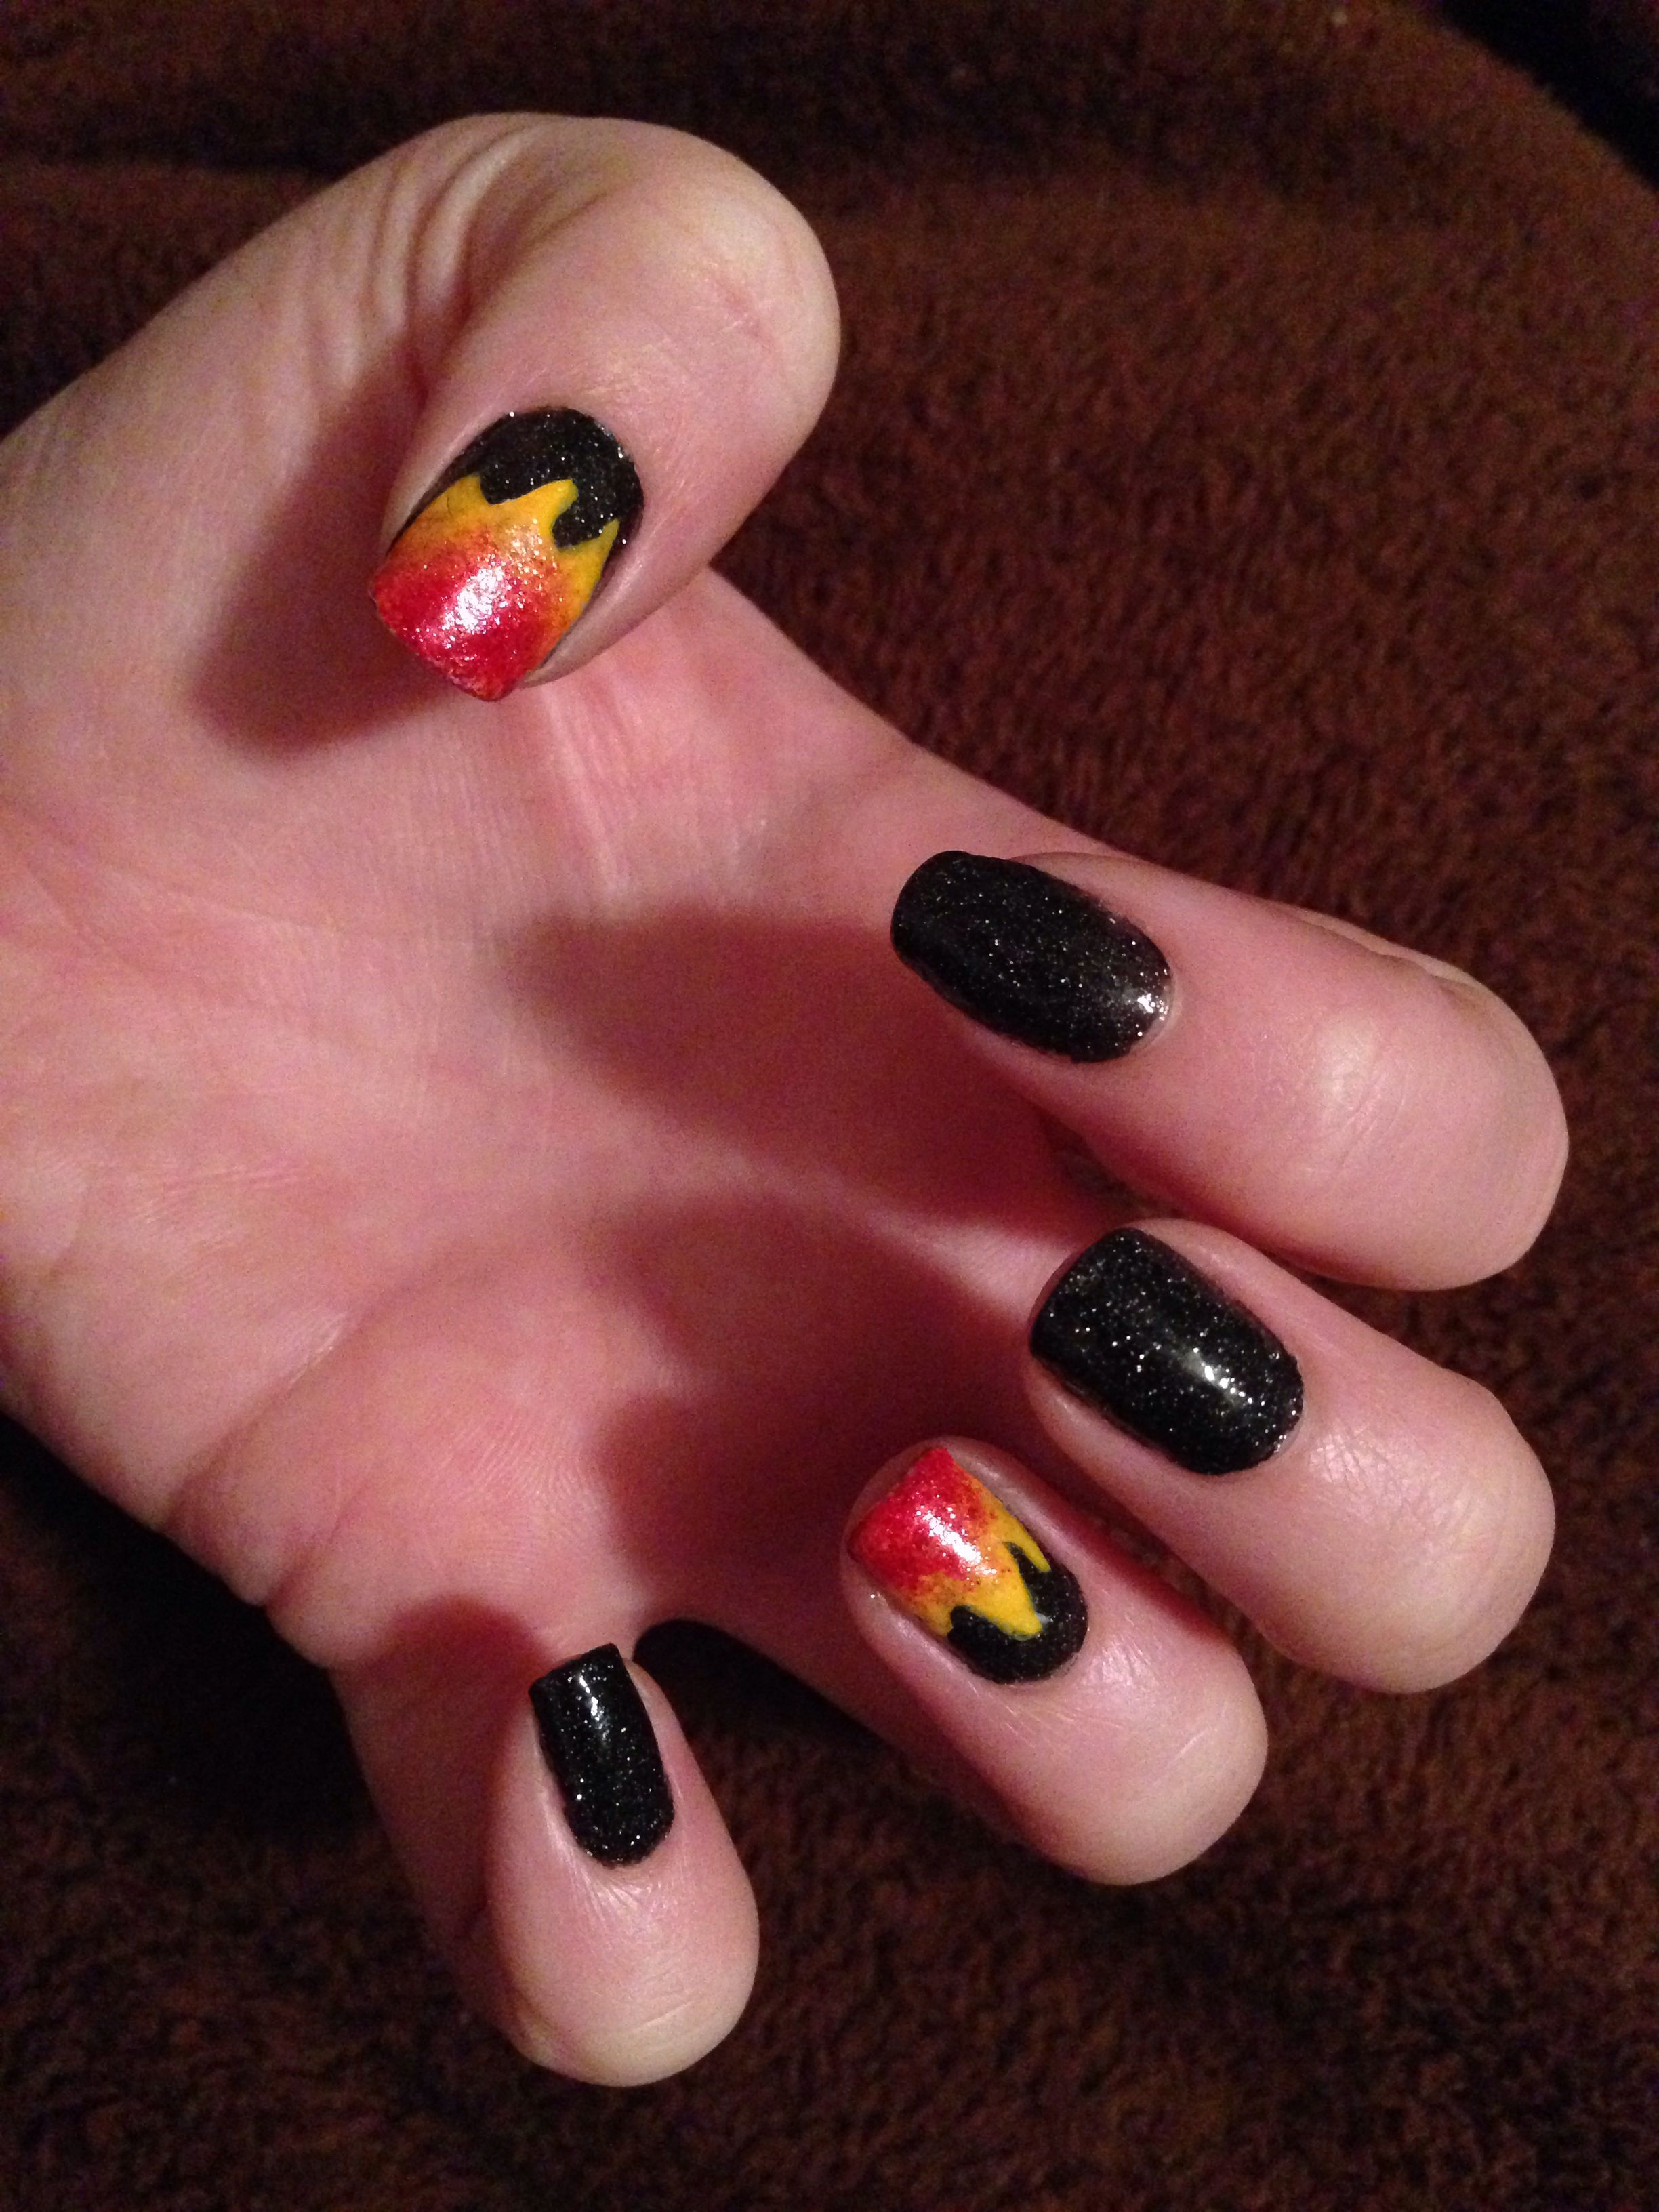 I wanted to do something cool on my nails since I was going to the Catching Fire premiere. I wasn't ambitious enough to attempt a Mockingjay, so I went with just flames for my Catching Fire nails... I think they turned out pretty well! :)